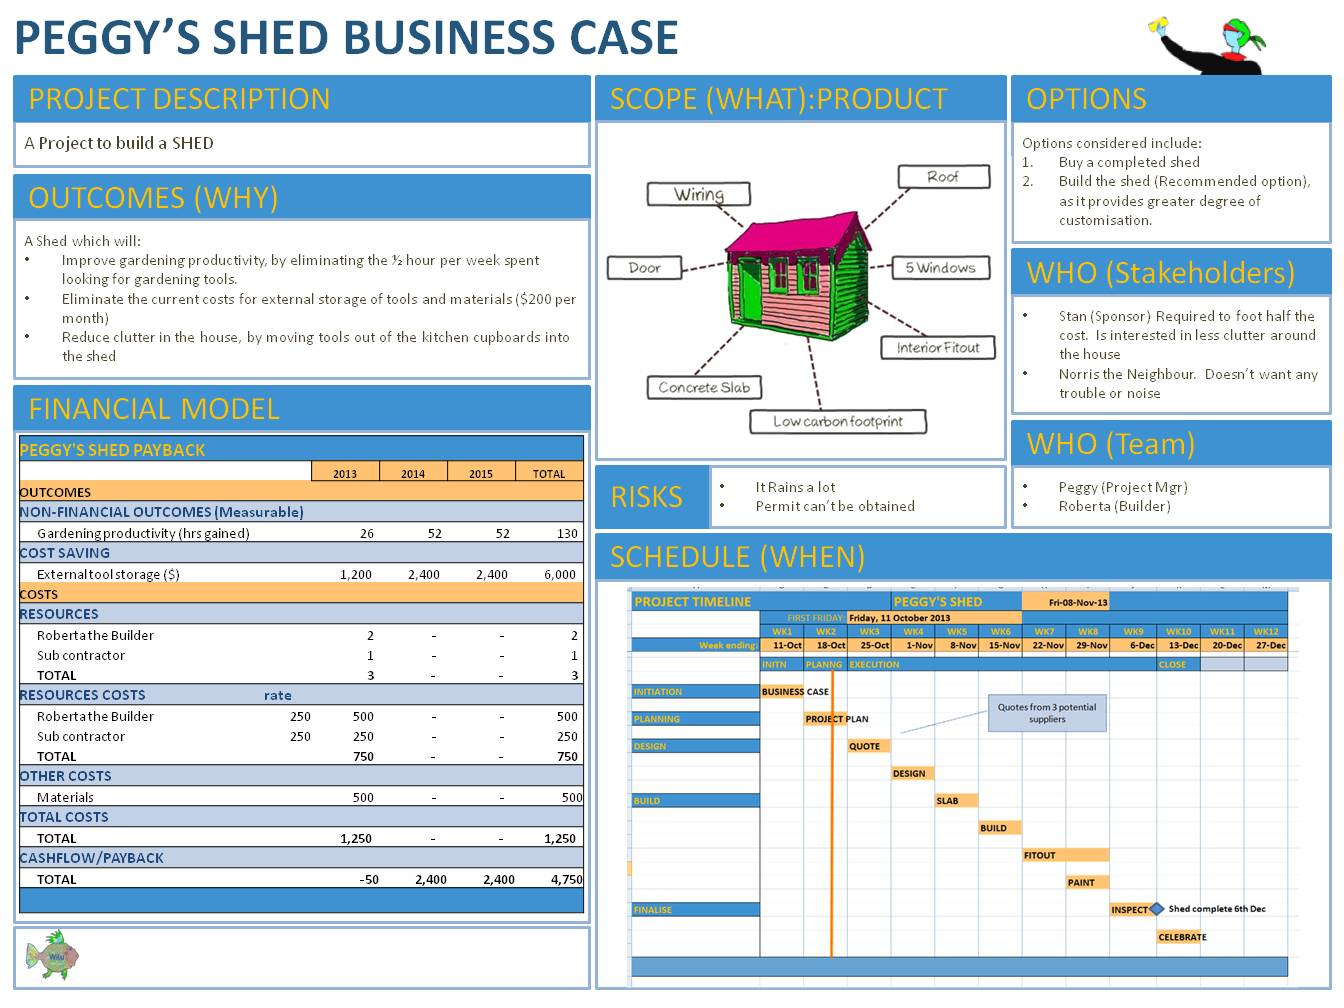 business case Free business templates, checklists, and toolkits to help you plan, start and grow your business.